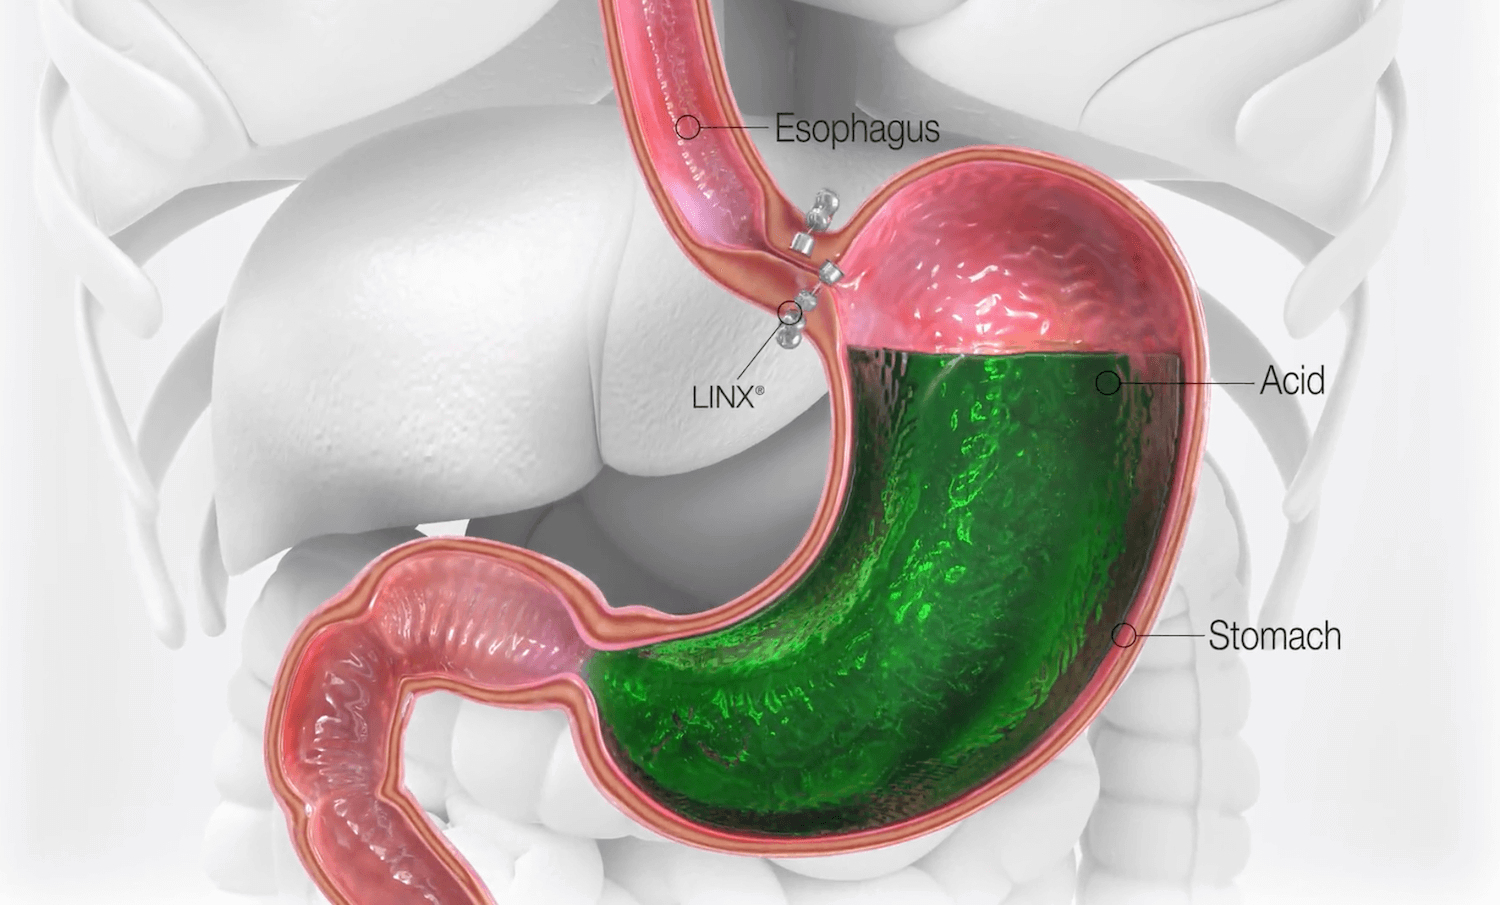 Hiatal Hernia - LINX and Nissen / Toupet Fundoplication